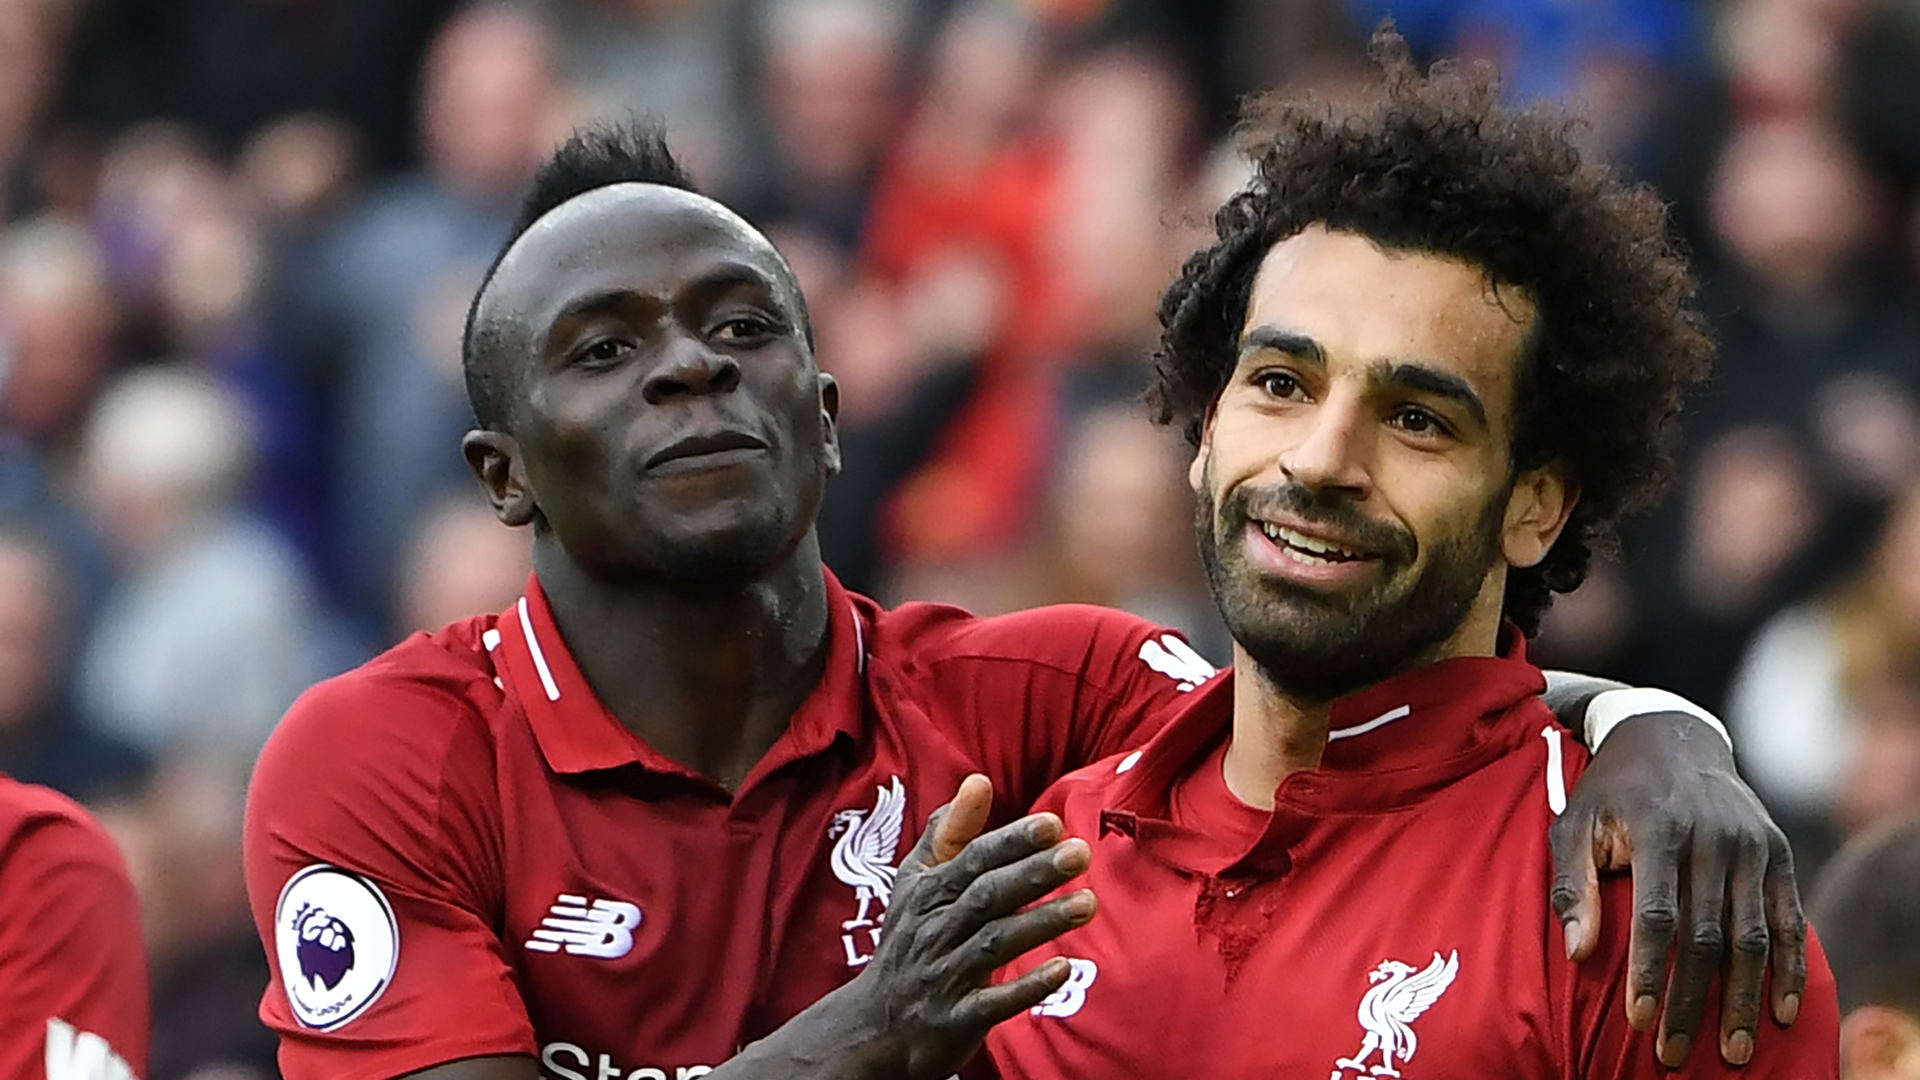 'Madrid Barca will be sniffing around Salah Mane' – Liverpool legend fears Suarez Coutinho repeat